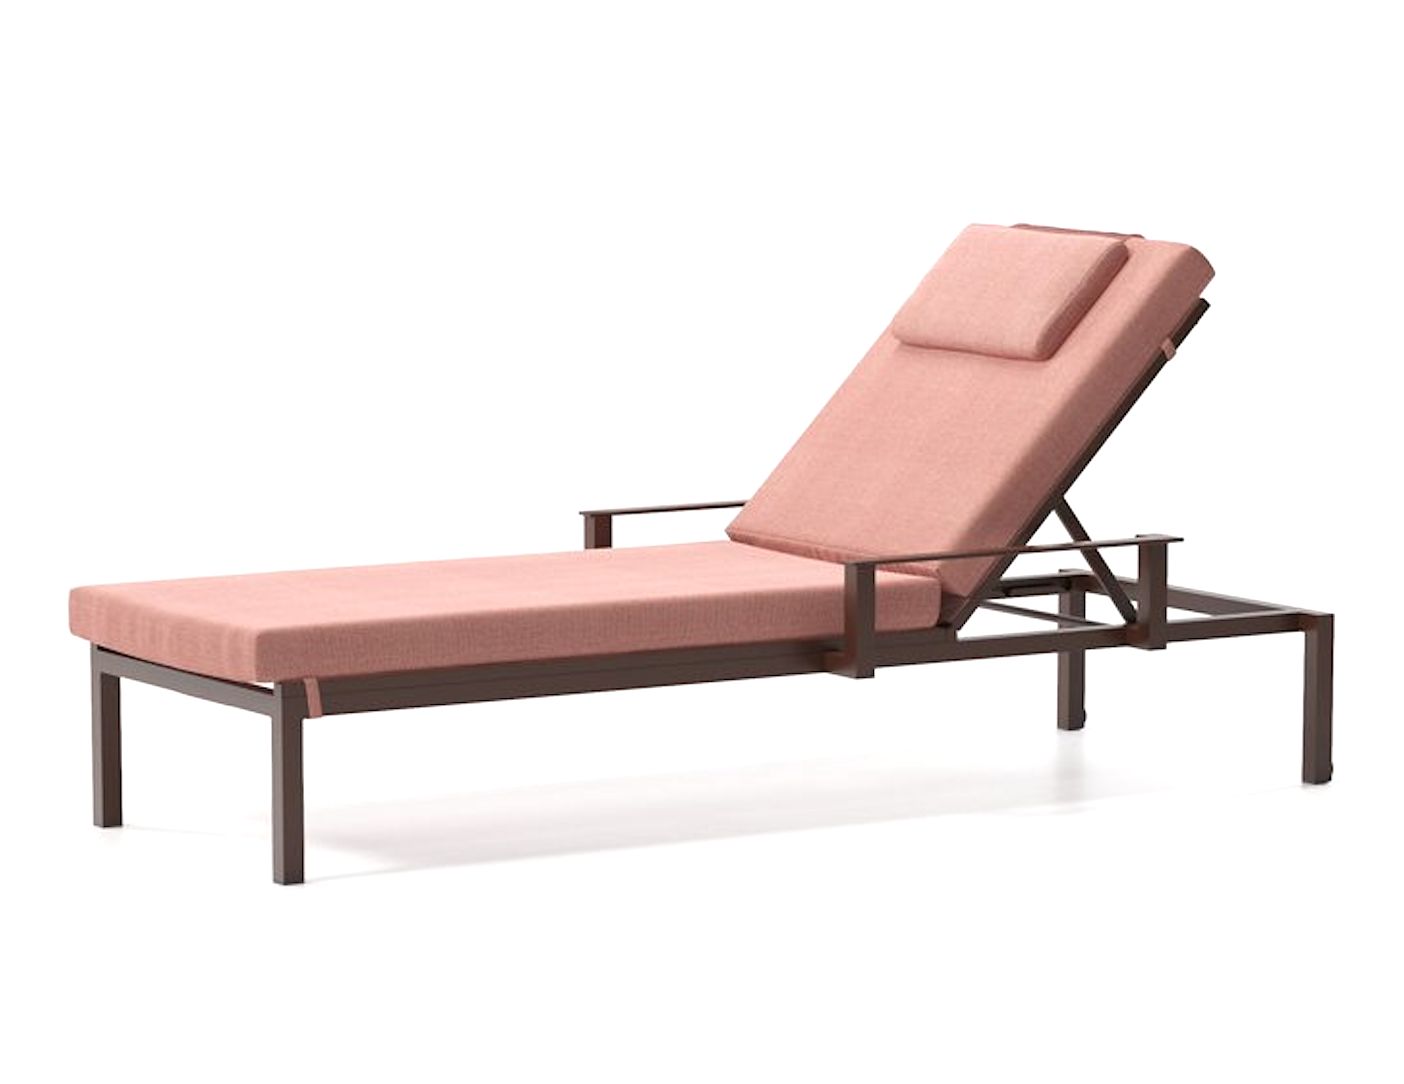 Product Image Landscape stackable sunlounger with arms